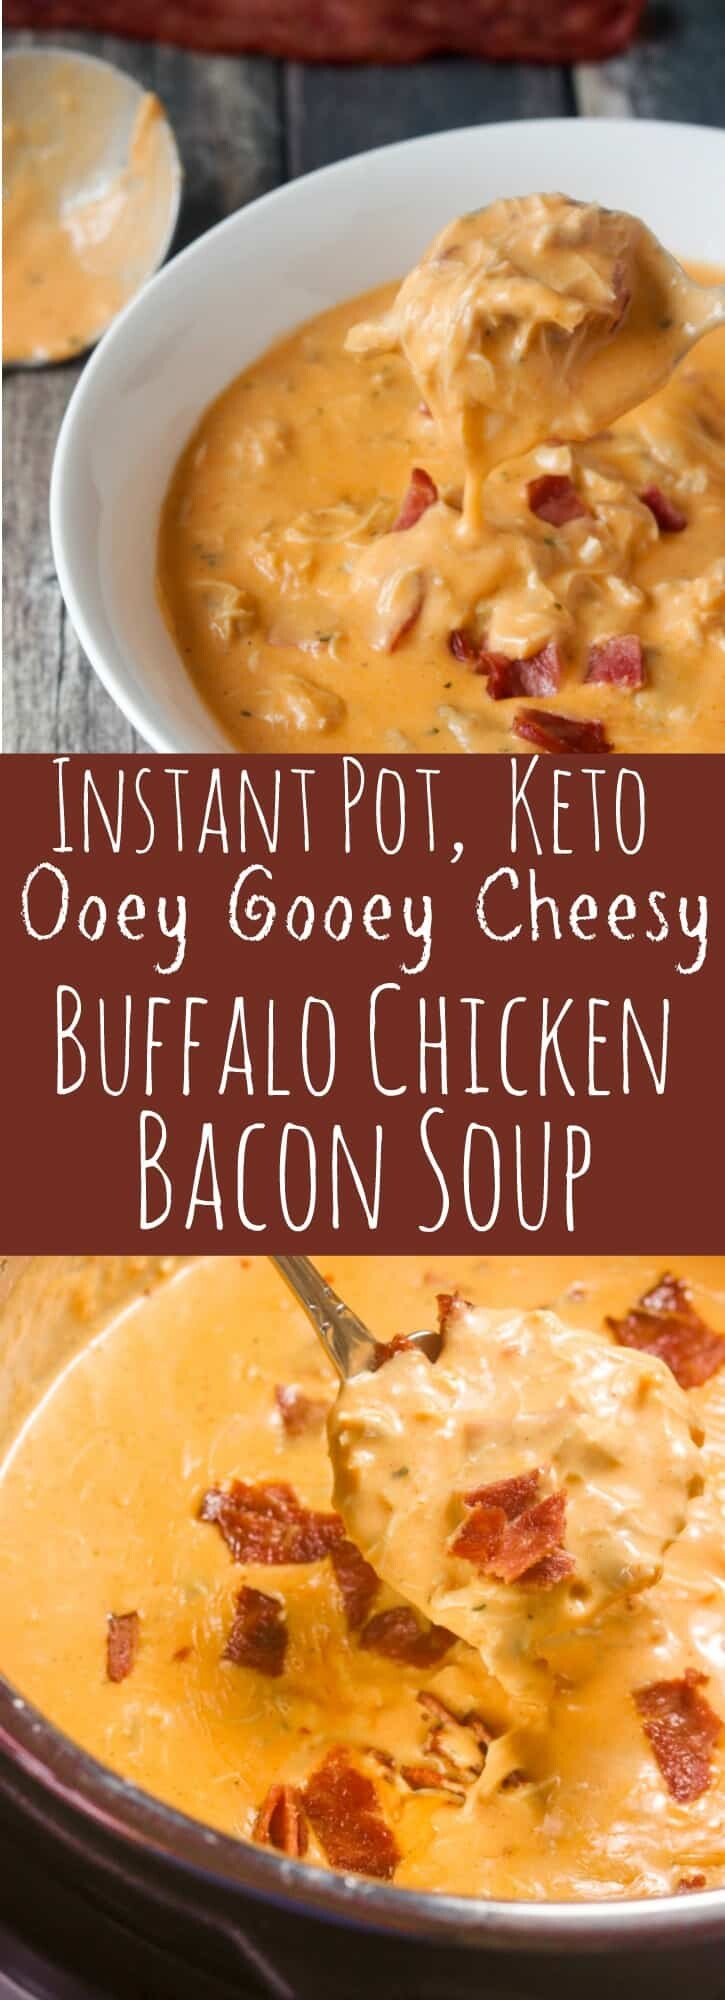 Keto Buffalo Chicken Bacon Soup